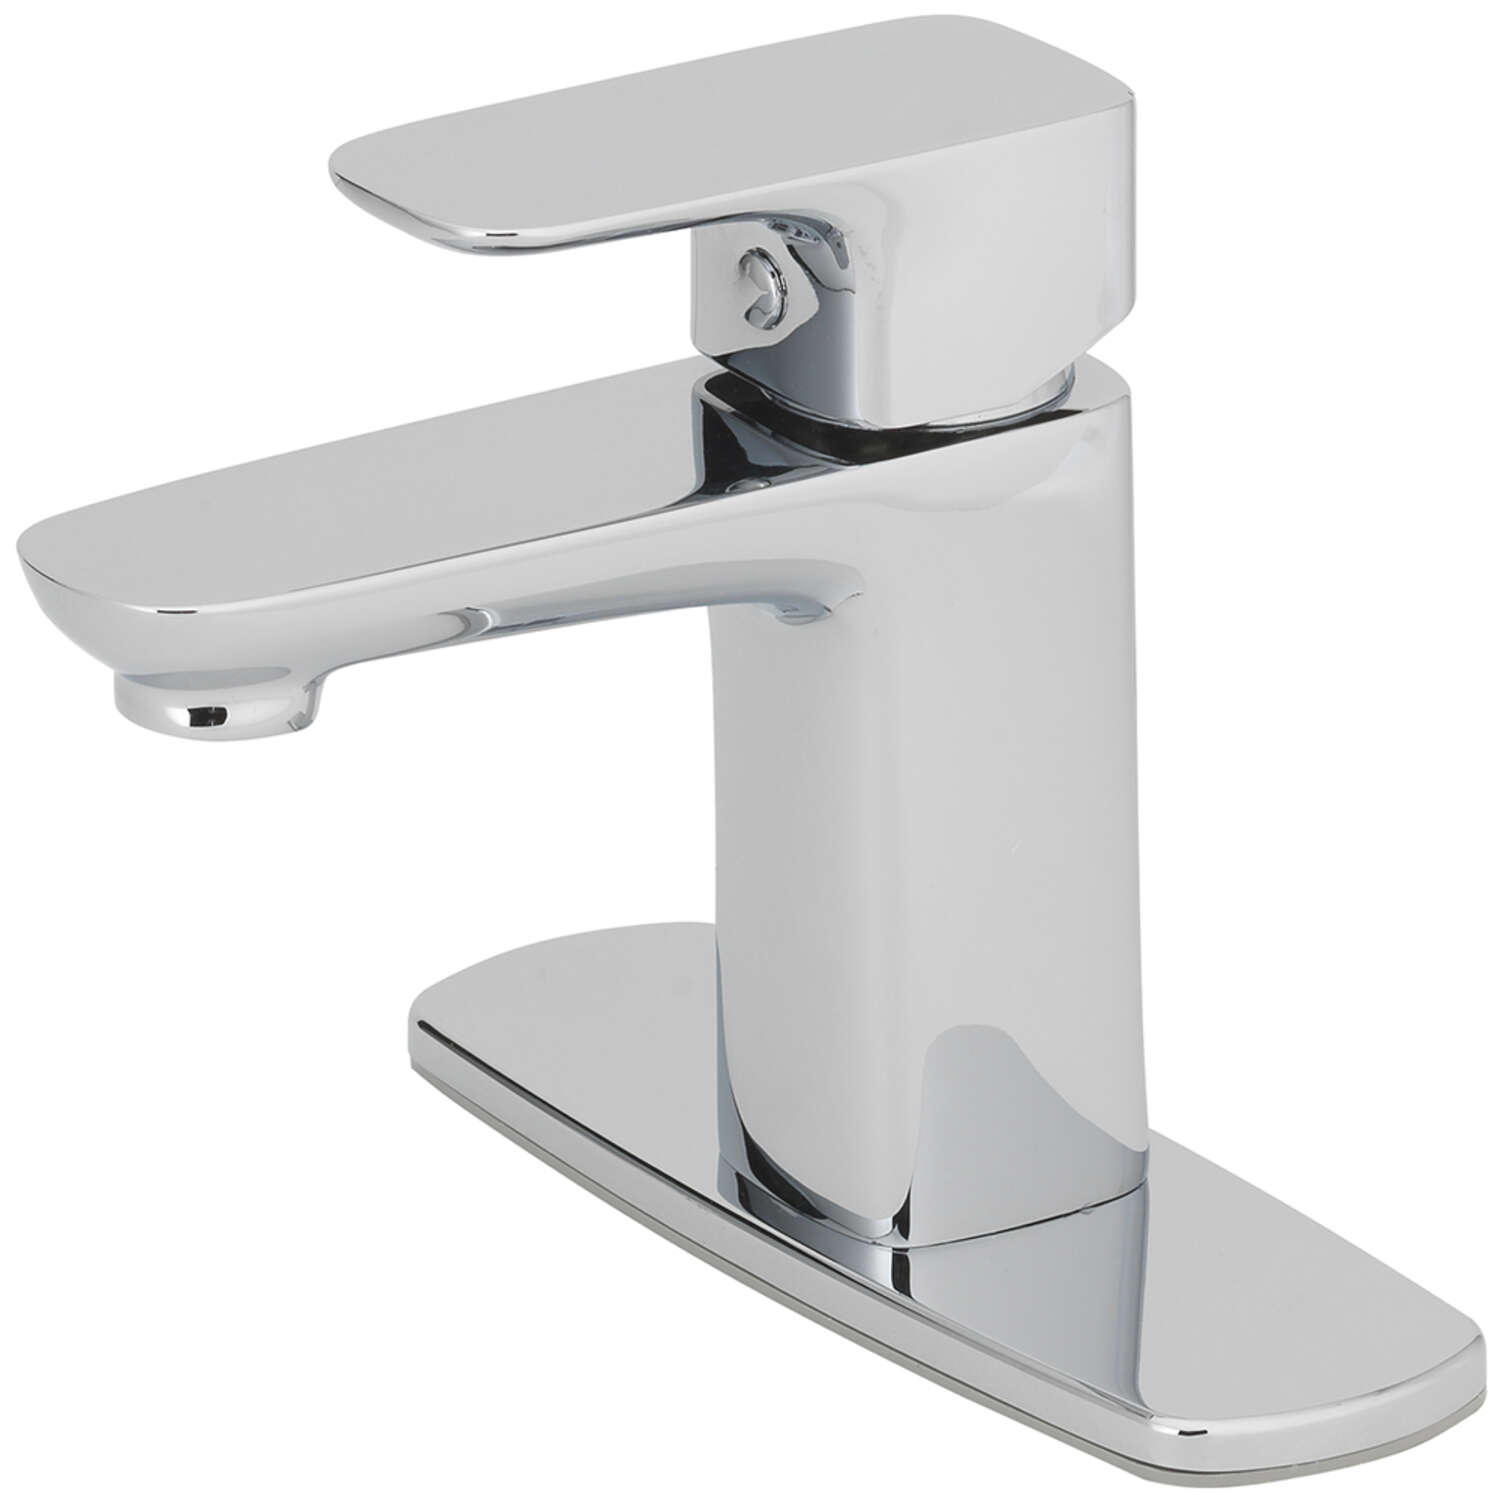 OakBrook  Modena  Moderna  Brushed Nickel  Single Handle  Lavatory Pop-Up Faucet  2 in.